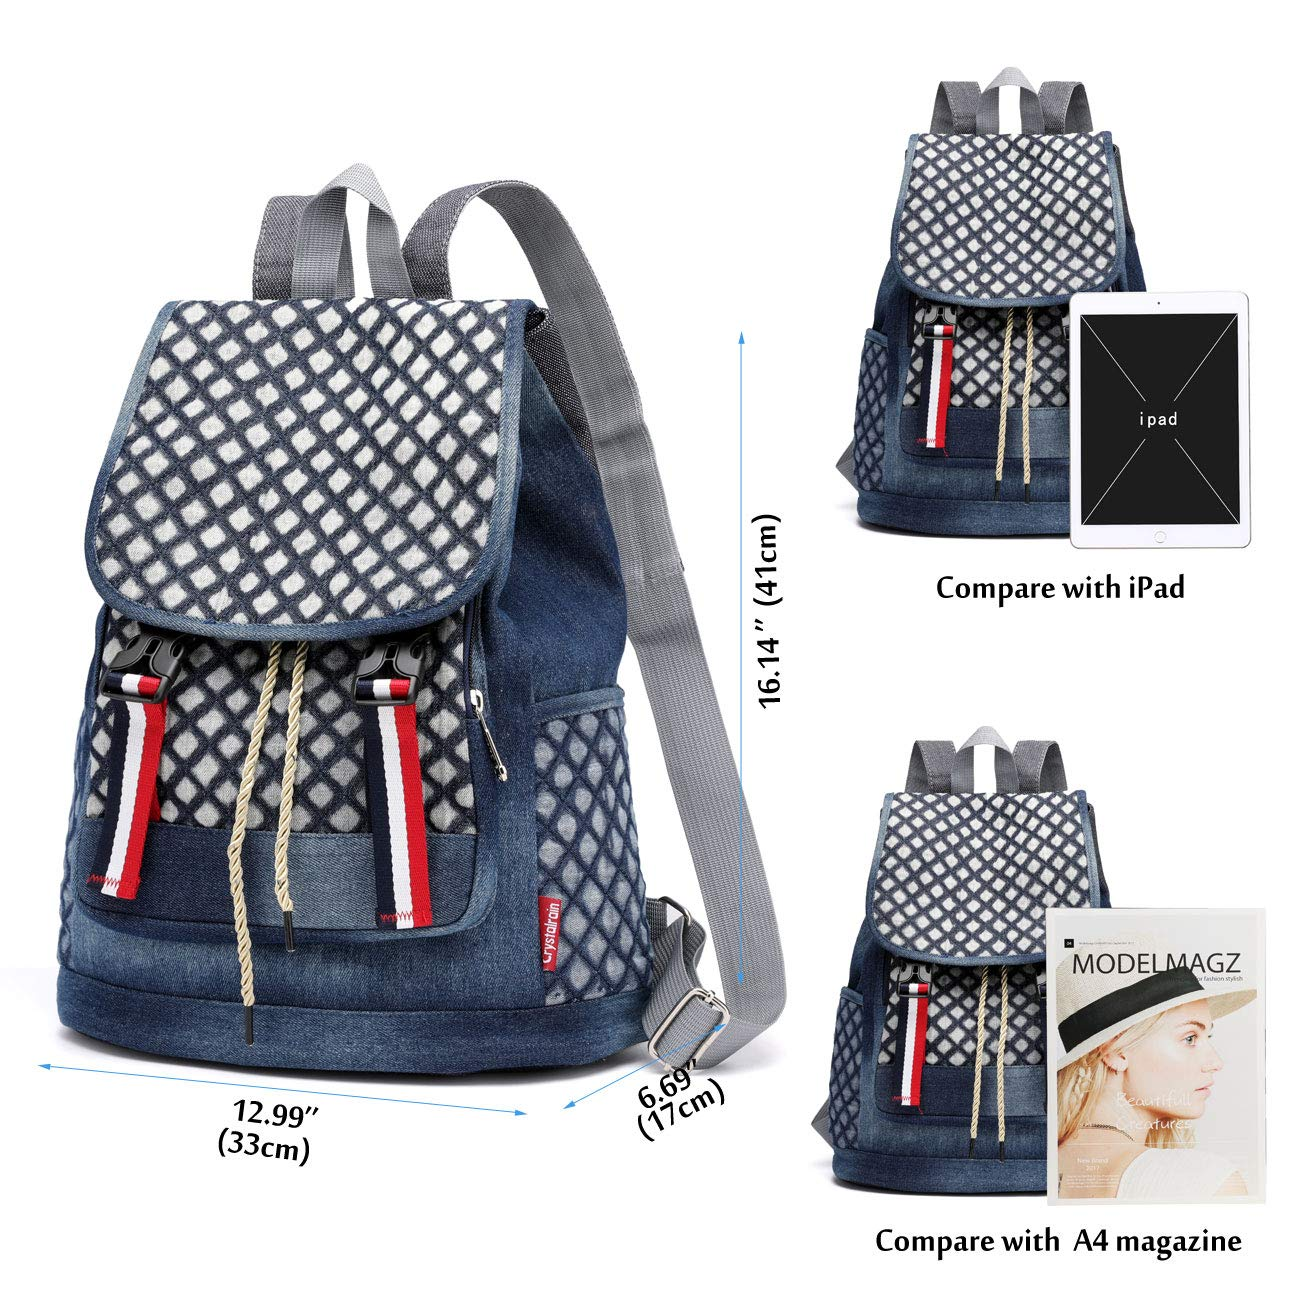 Amazon.com: Denim School Backpack for Teen Girls Kids Xuanber Cute Bookbag Elementary Middle Student Rucksack Slim Small Jeans Bag Purse Women Daypack ...